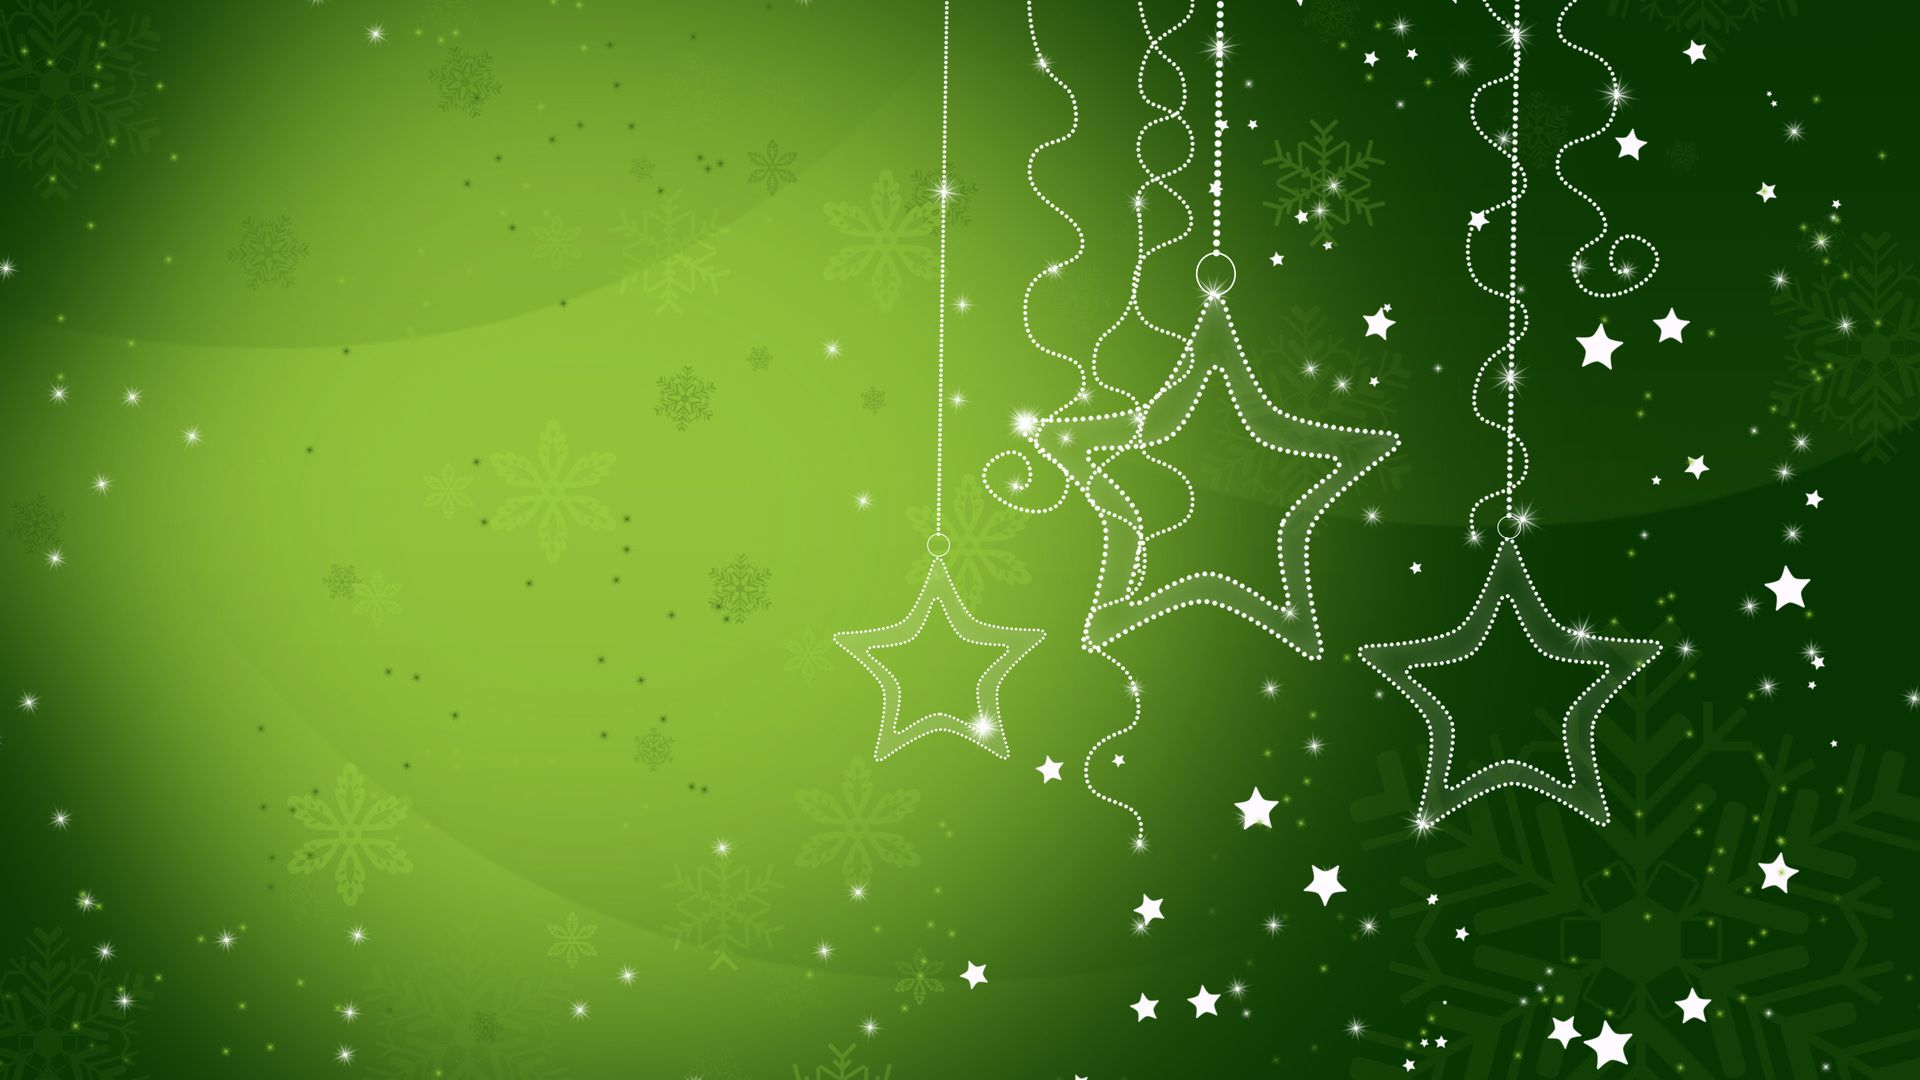 Green Christmas wallpaper photo hd